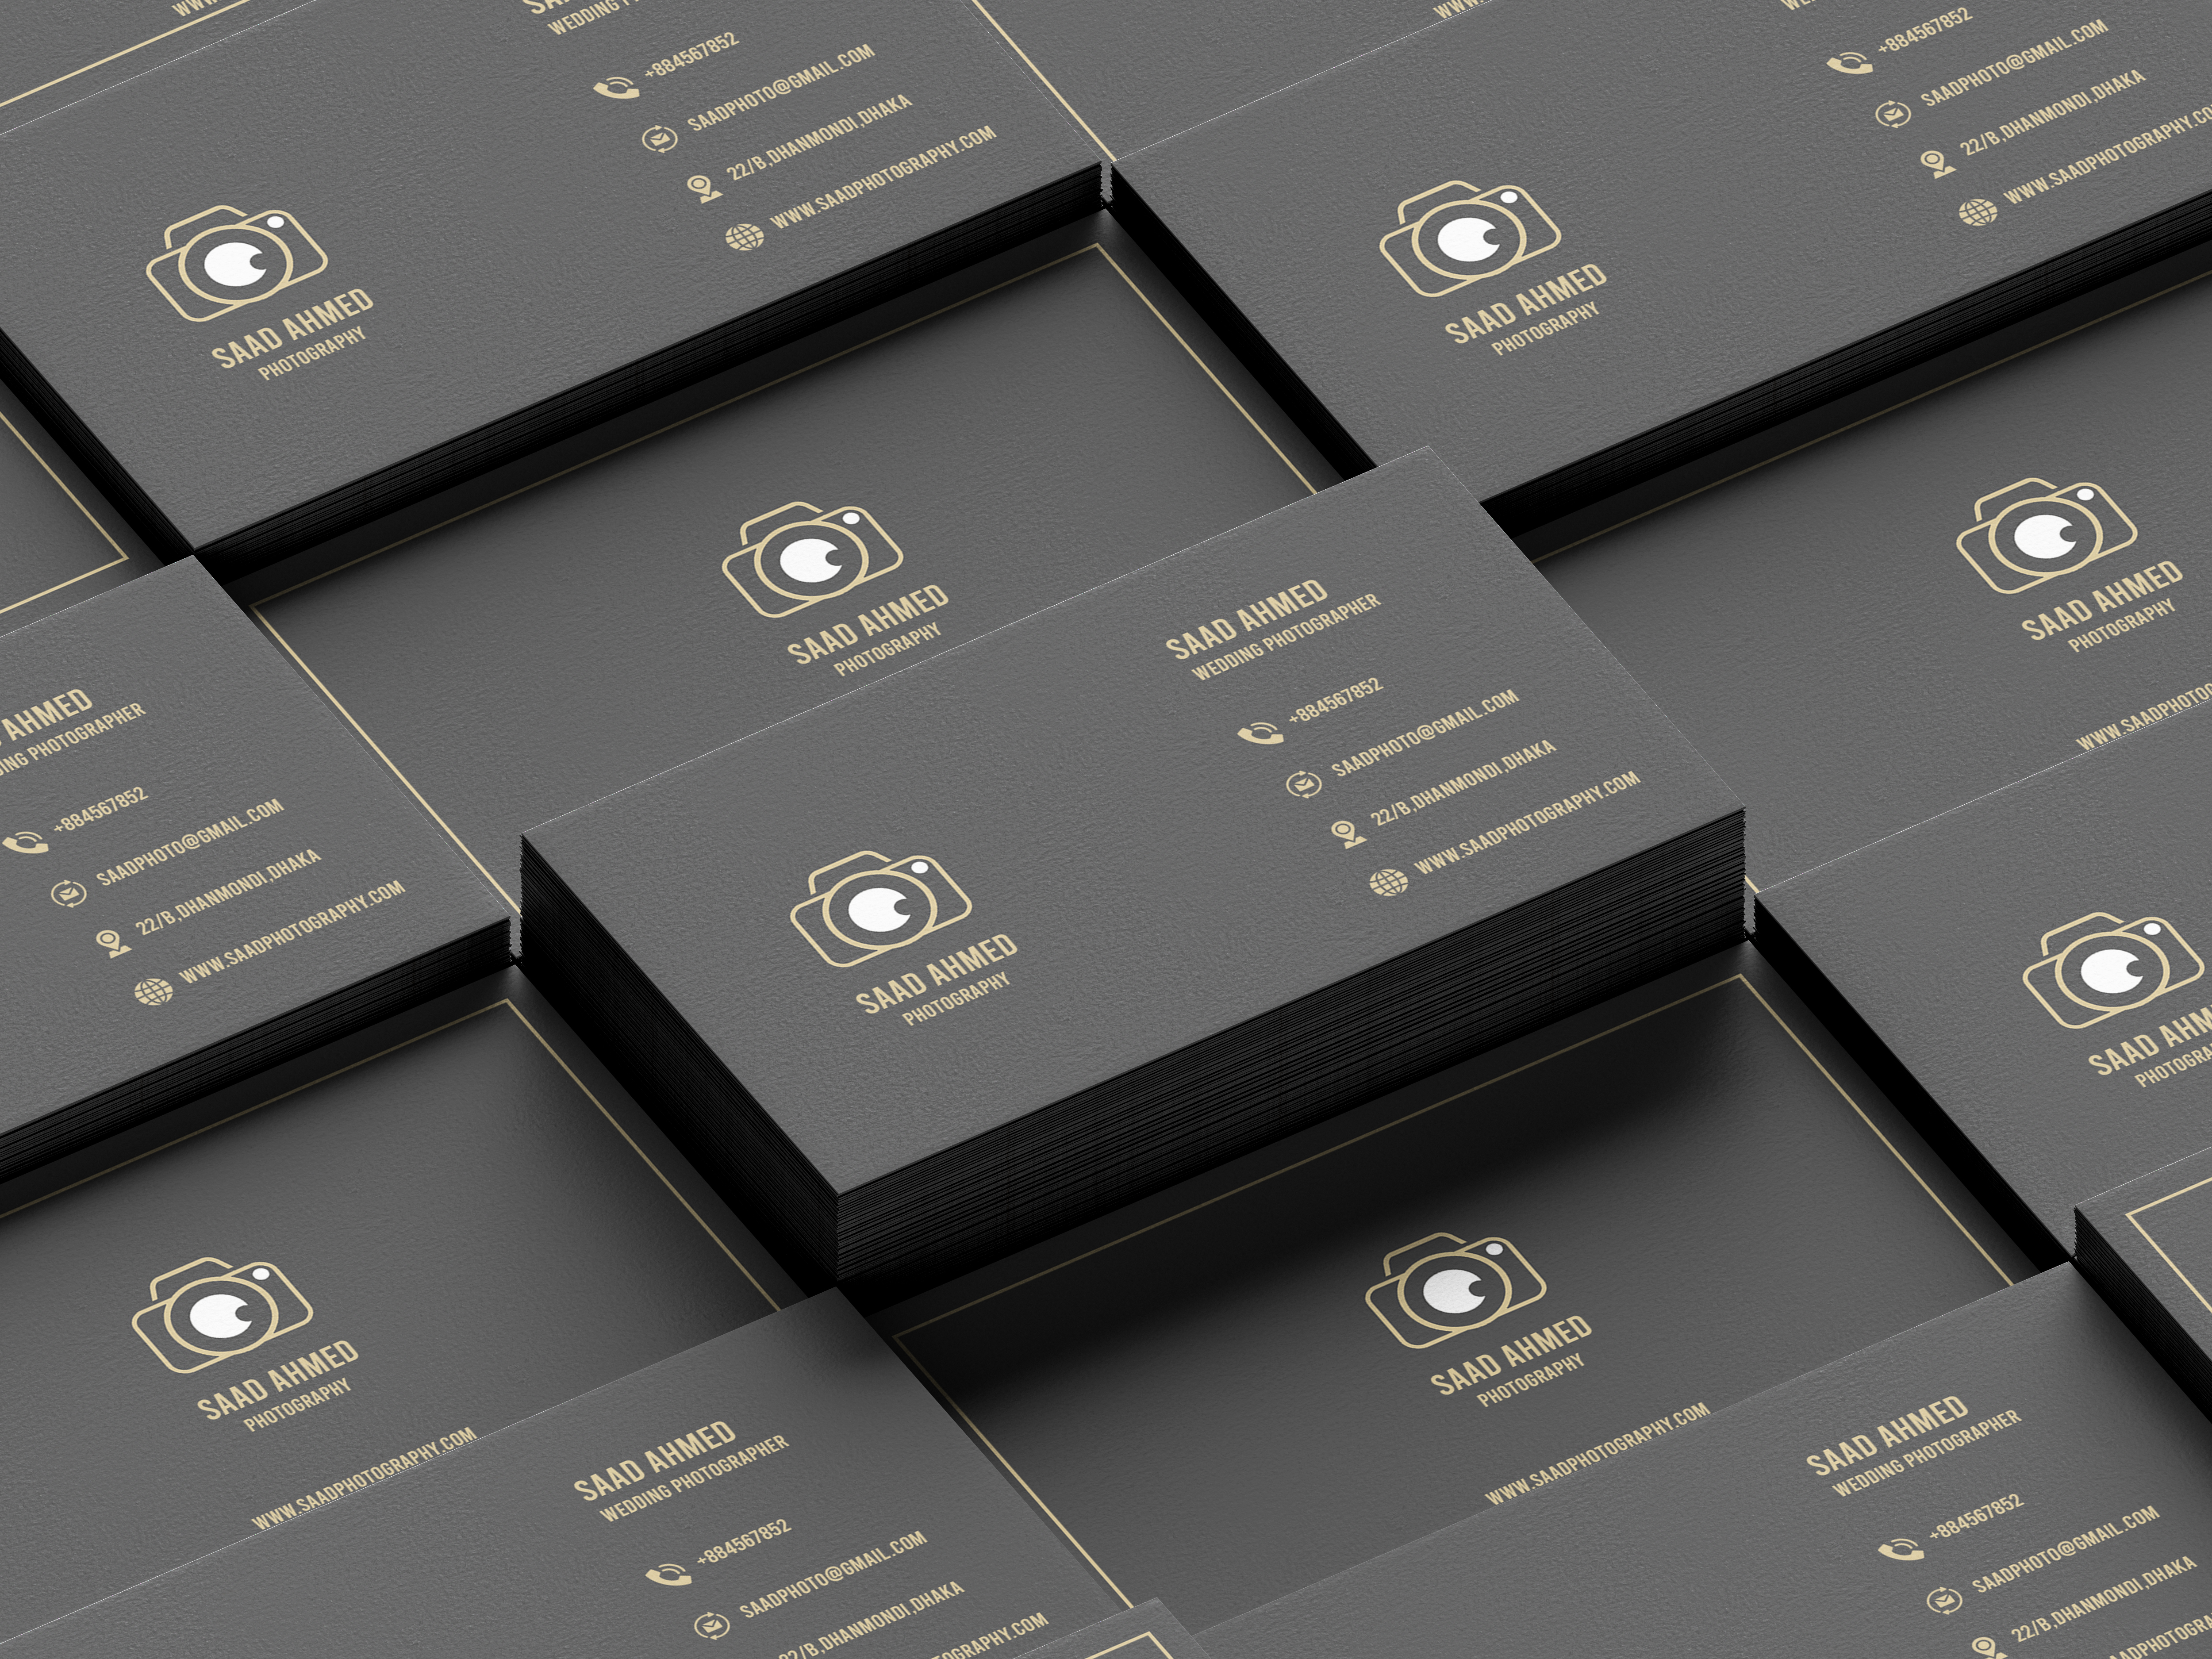 I will design a professional, creative business card in 24 hour